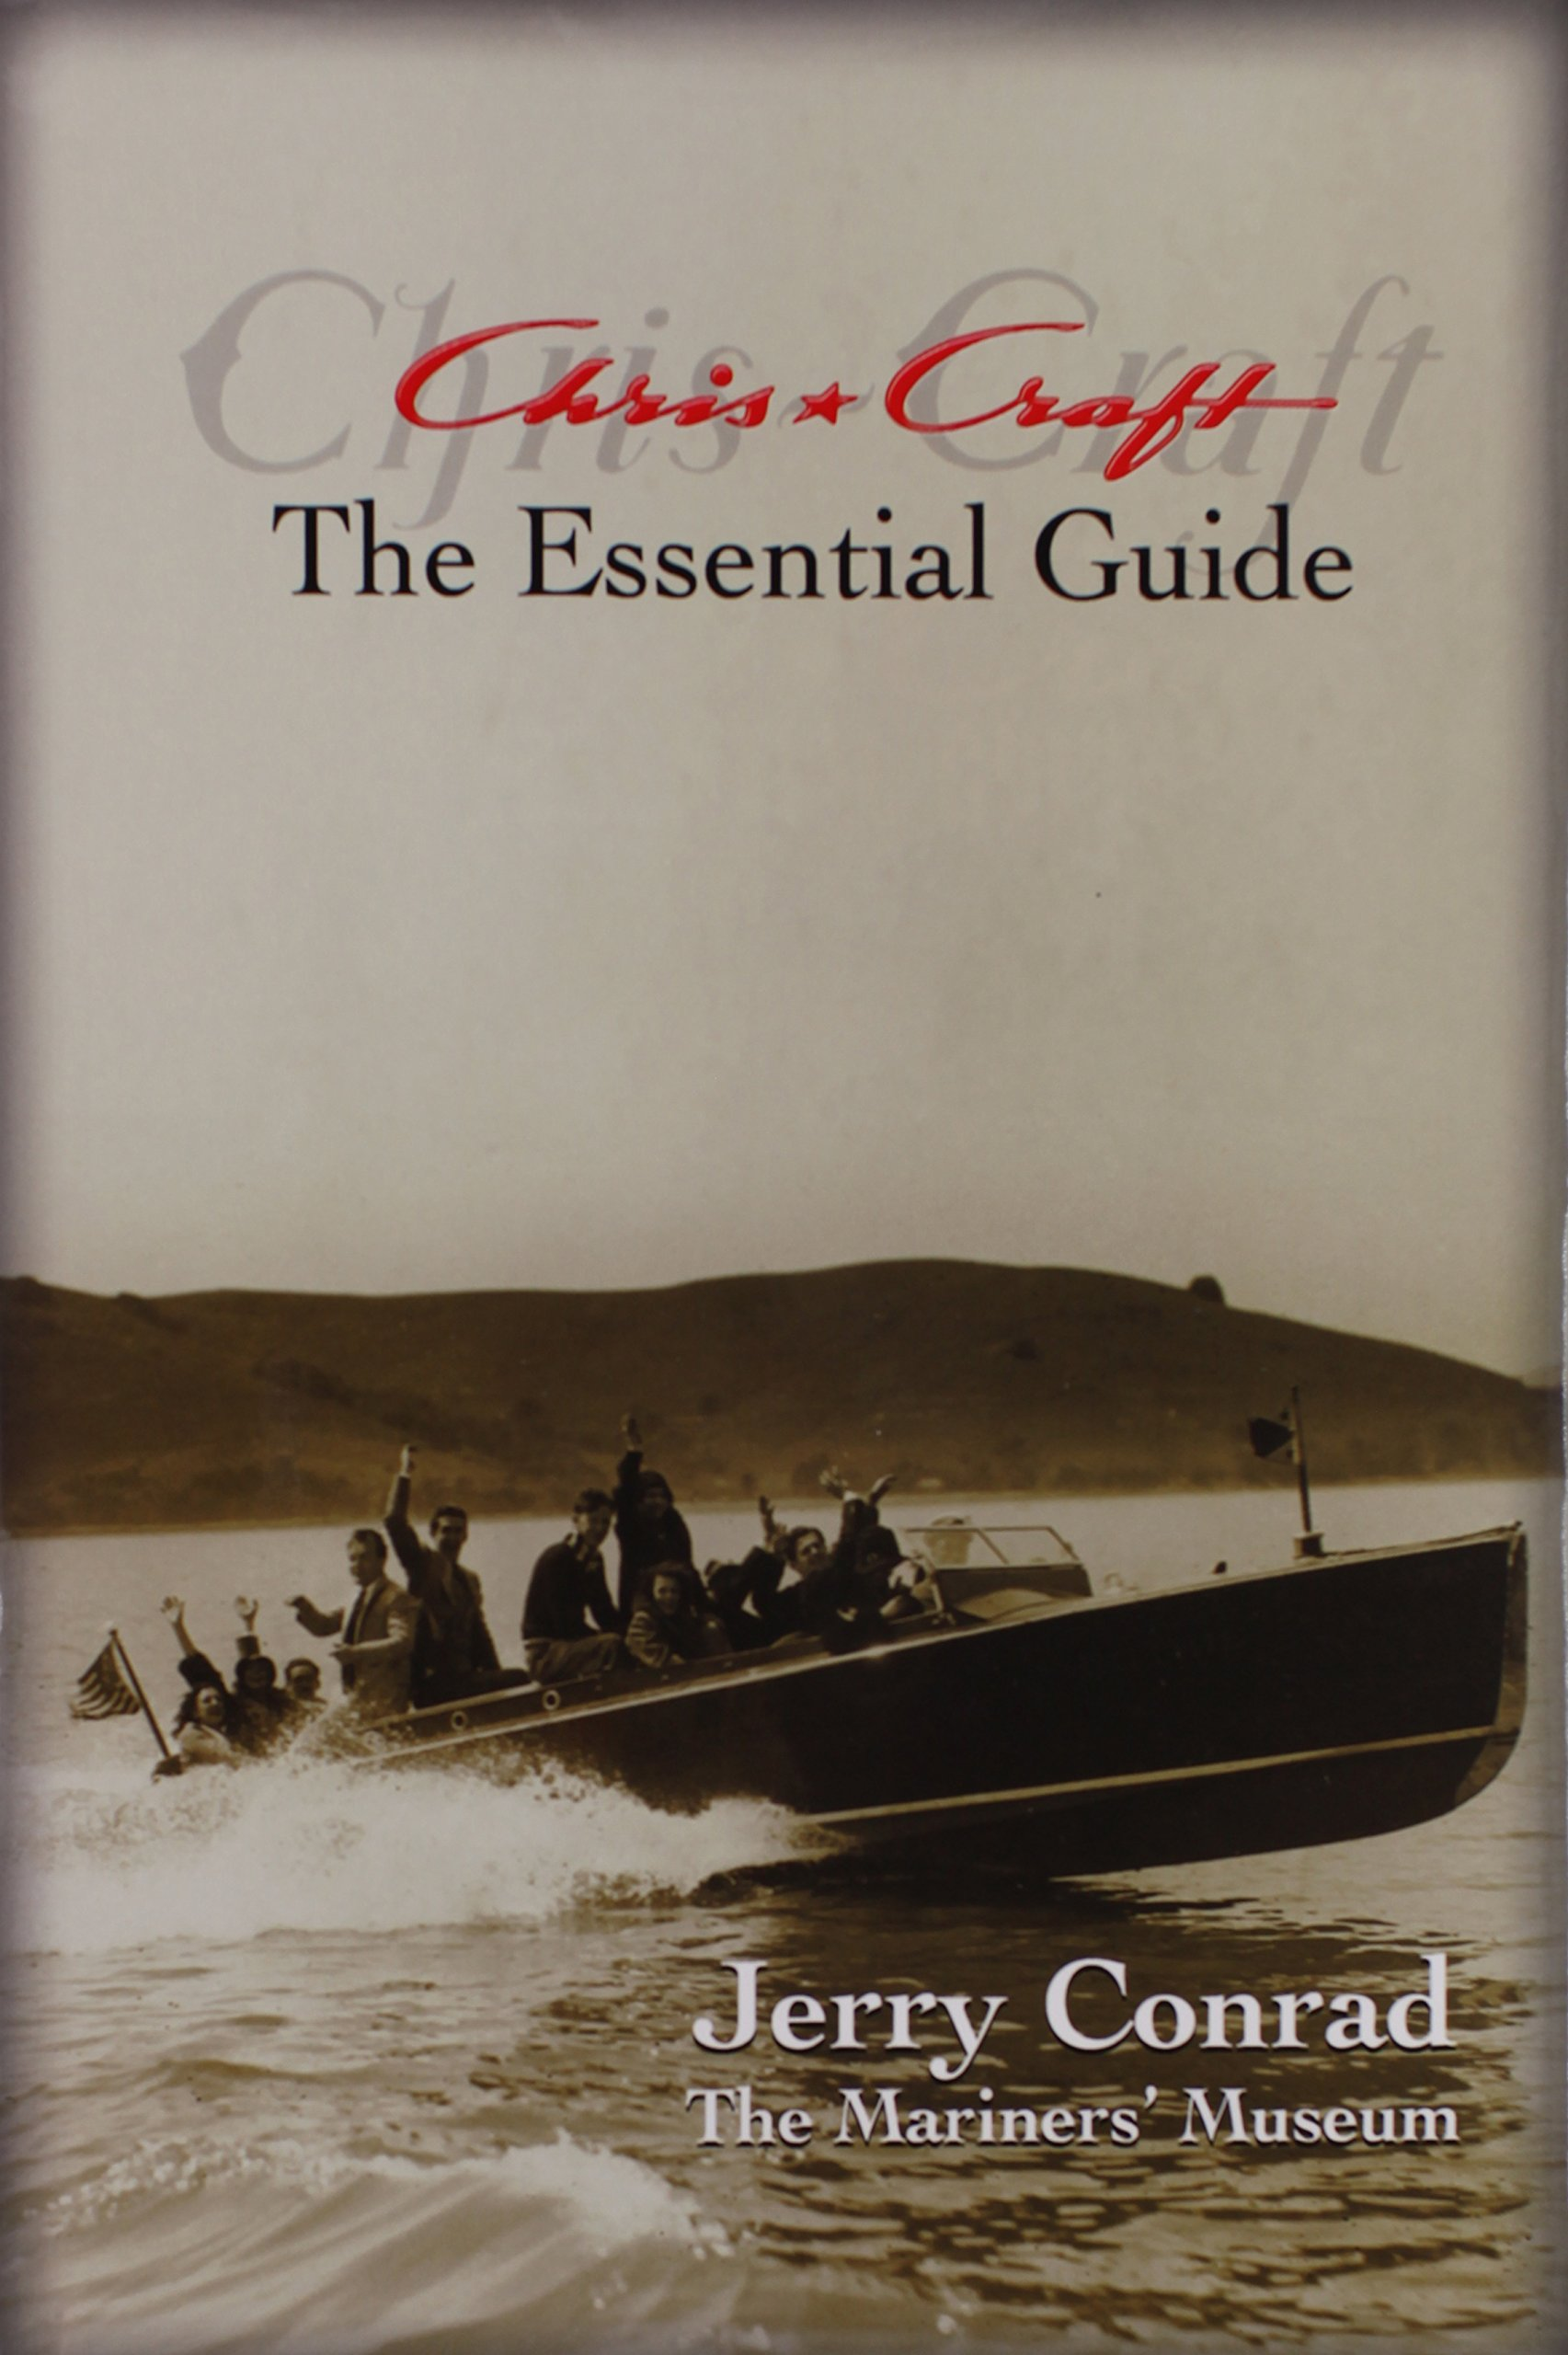 Chris-Craft: The Essential Guide: Jerry Conrad, The Mariners' Museum:  9780991583904: Amazon.com: Books